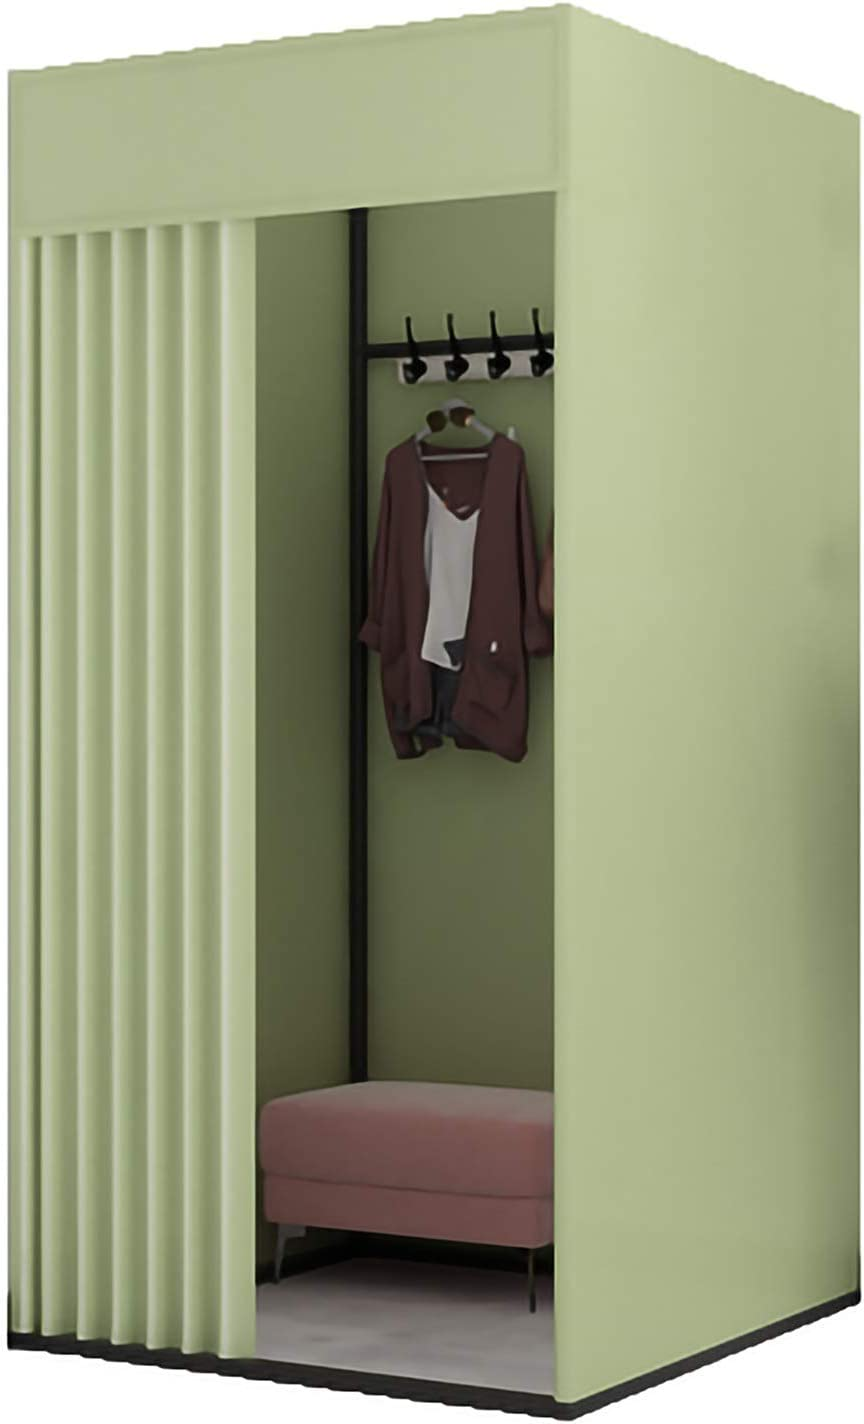 Dressing Room Fitting with Blackout Mobile Curtains 40% OFF Cheap Max 54% OFF Sale Simple